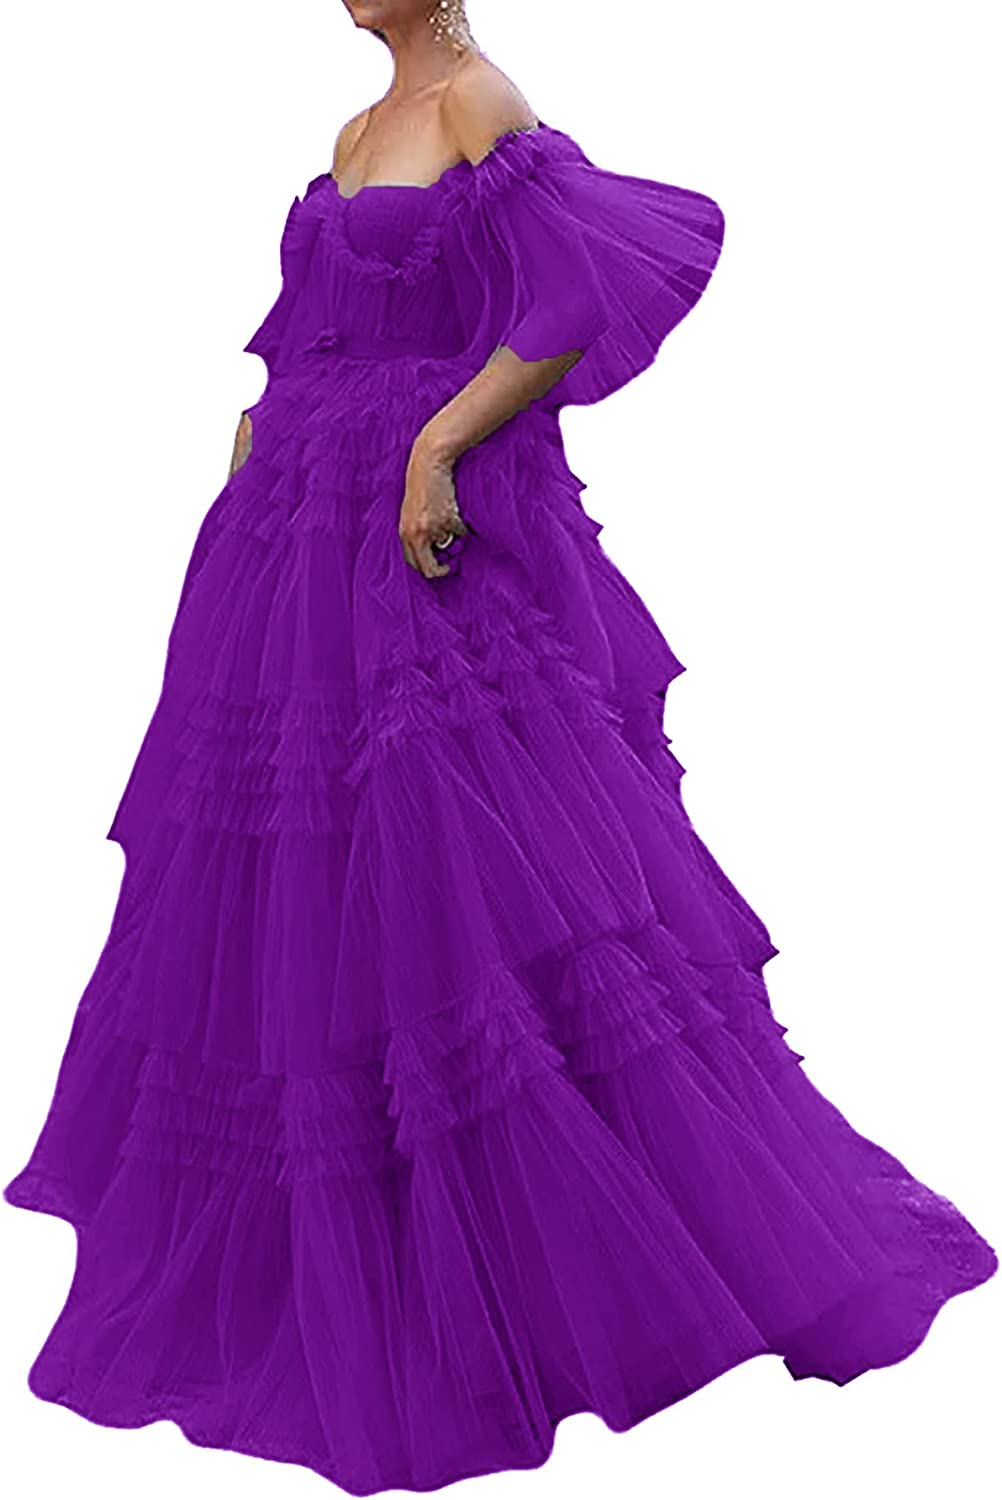 Tianzhihe Off Shoulder Prom Dresses for Women Vintage Tulle Evening Gowns Puffy A-line Ball Gown Formal Party Dress